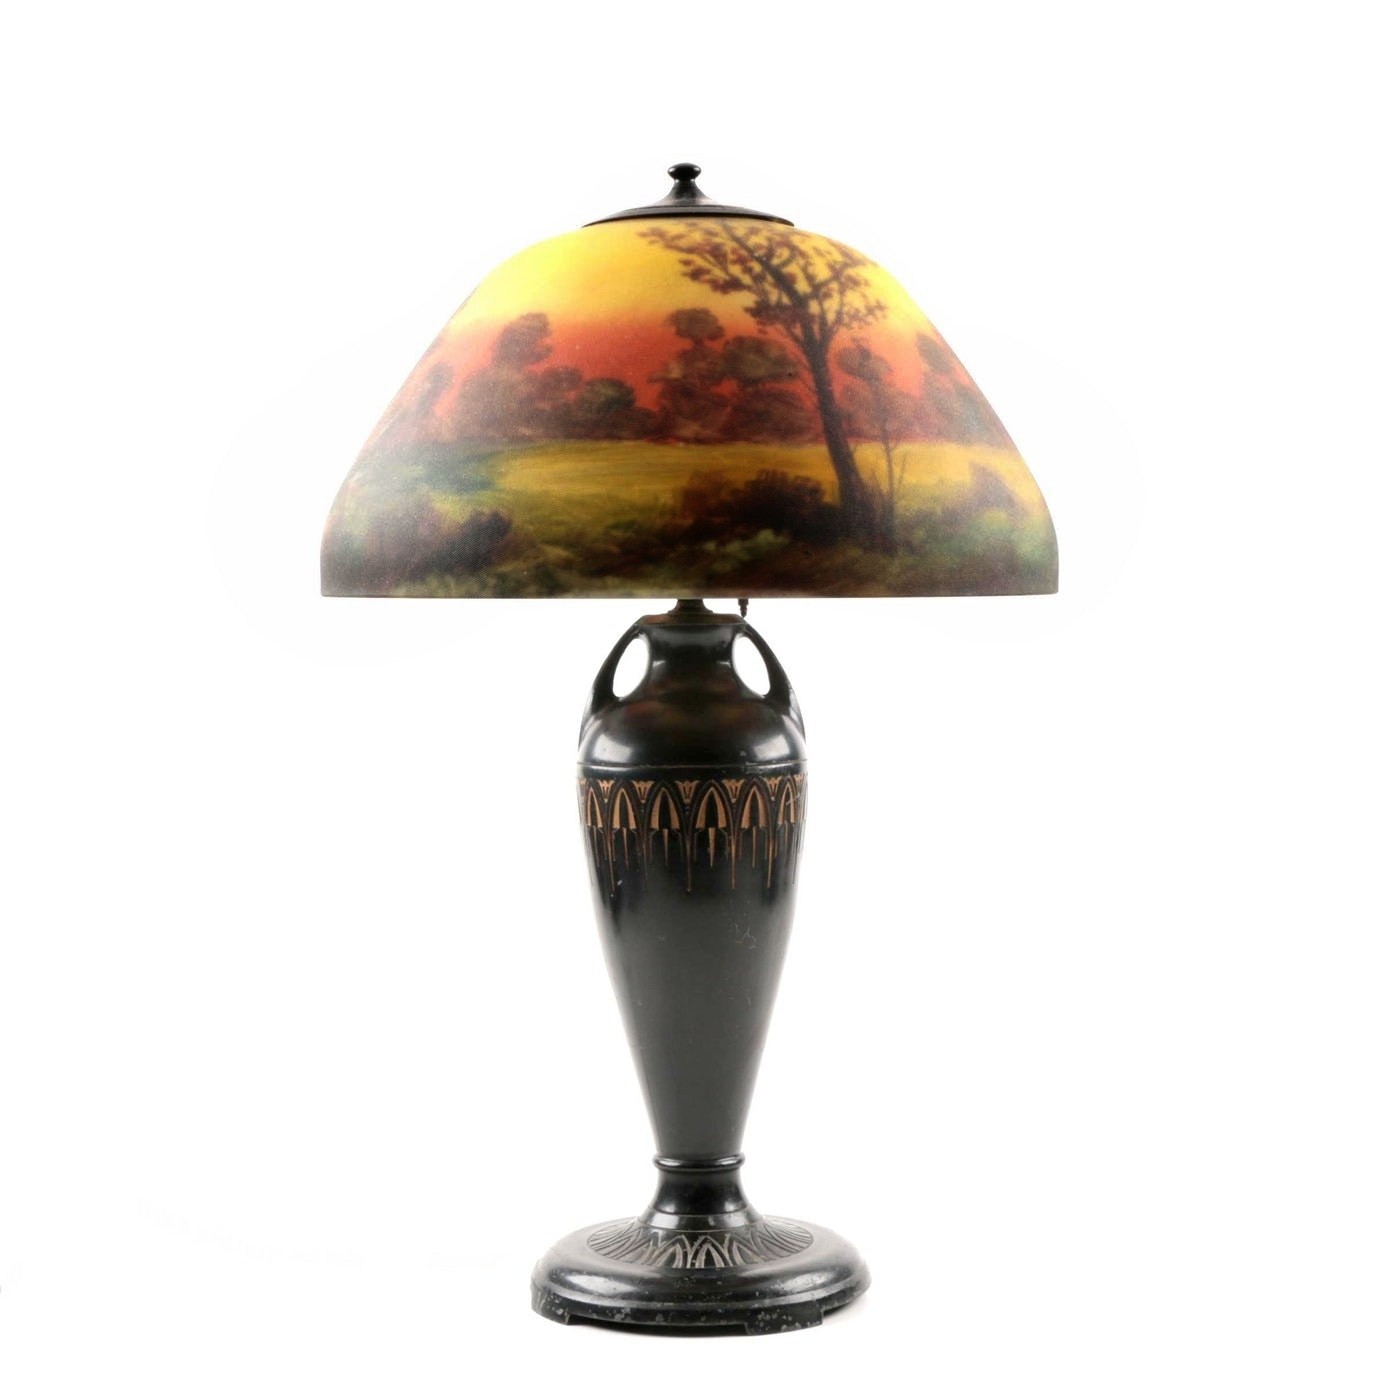 Moe-Bridges Table Lamp with Reverse-Painted Glass Shade